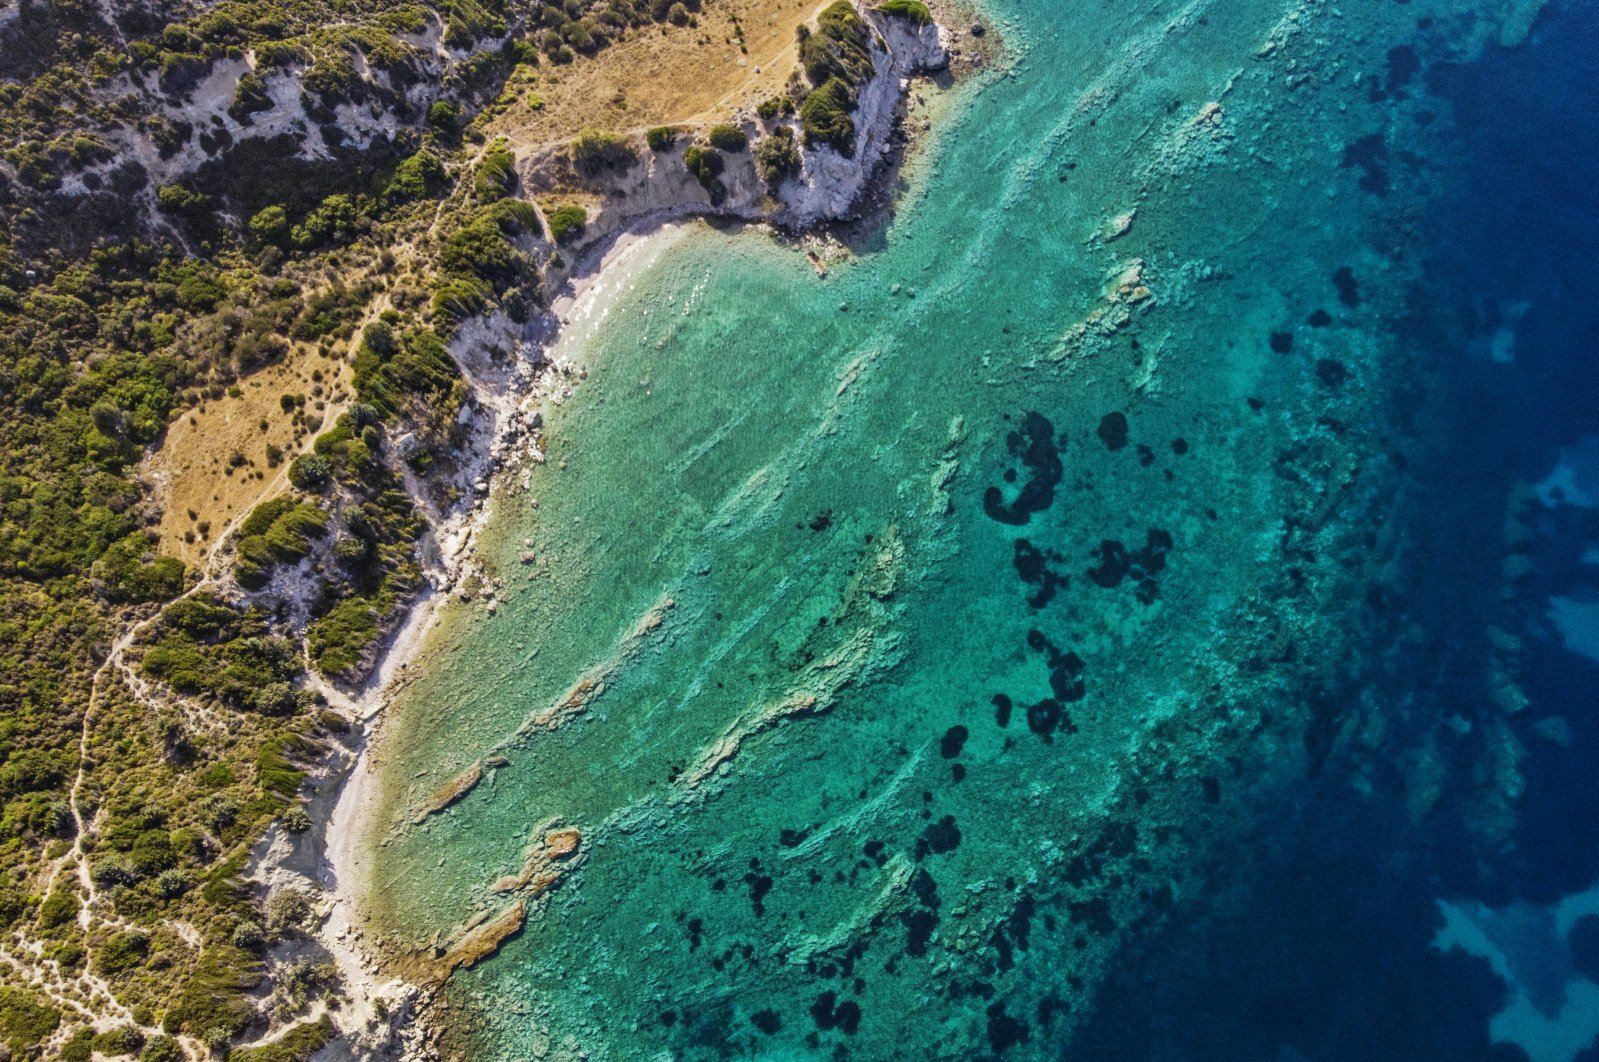 The Aegean region remains an expats' favorite area to live, after Istanbul. (iStock Photo)